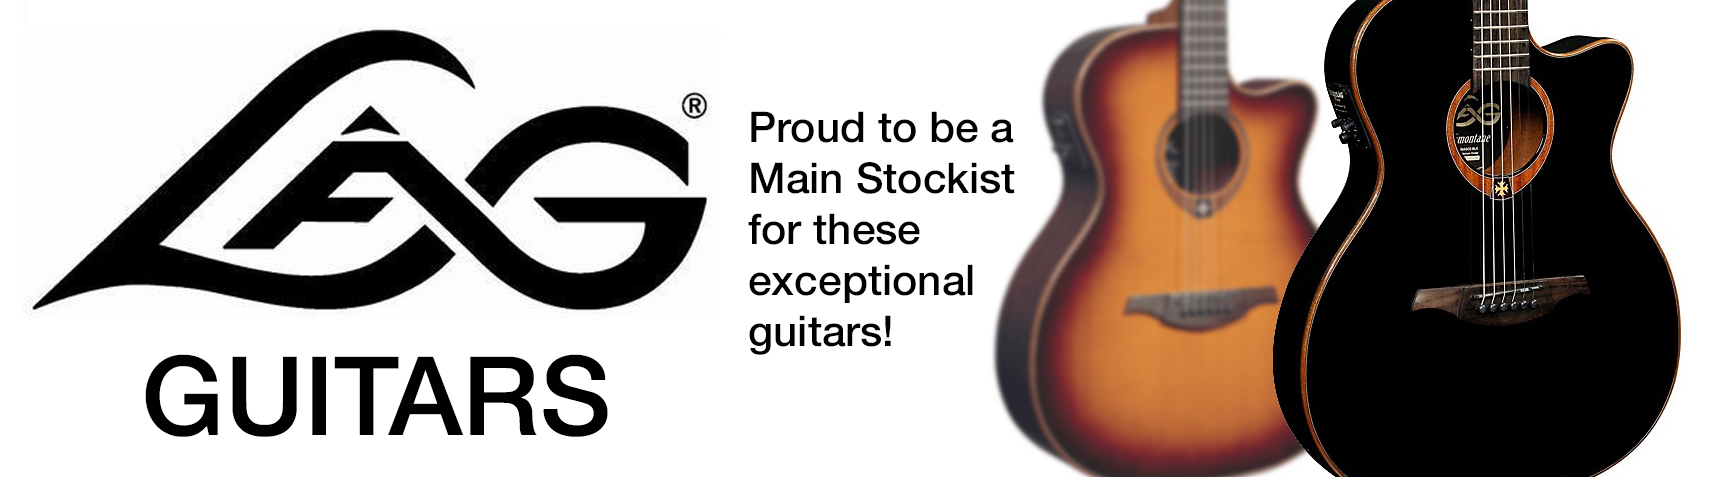 lag guitars main stockist at pencerdd music store